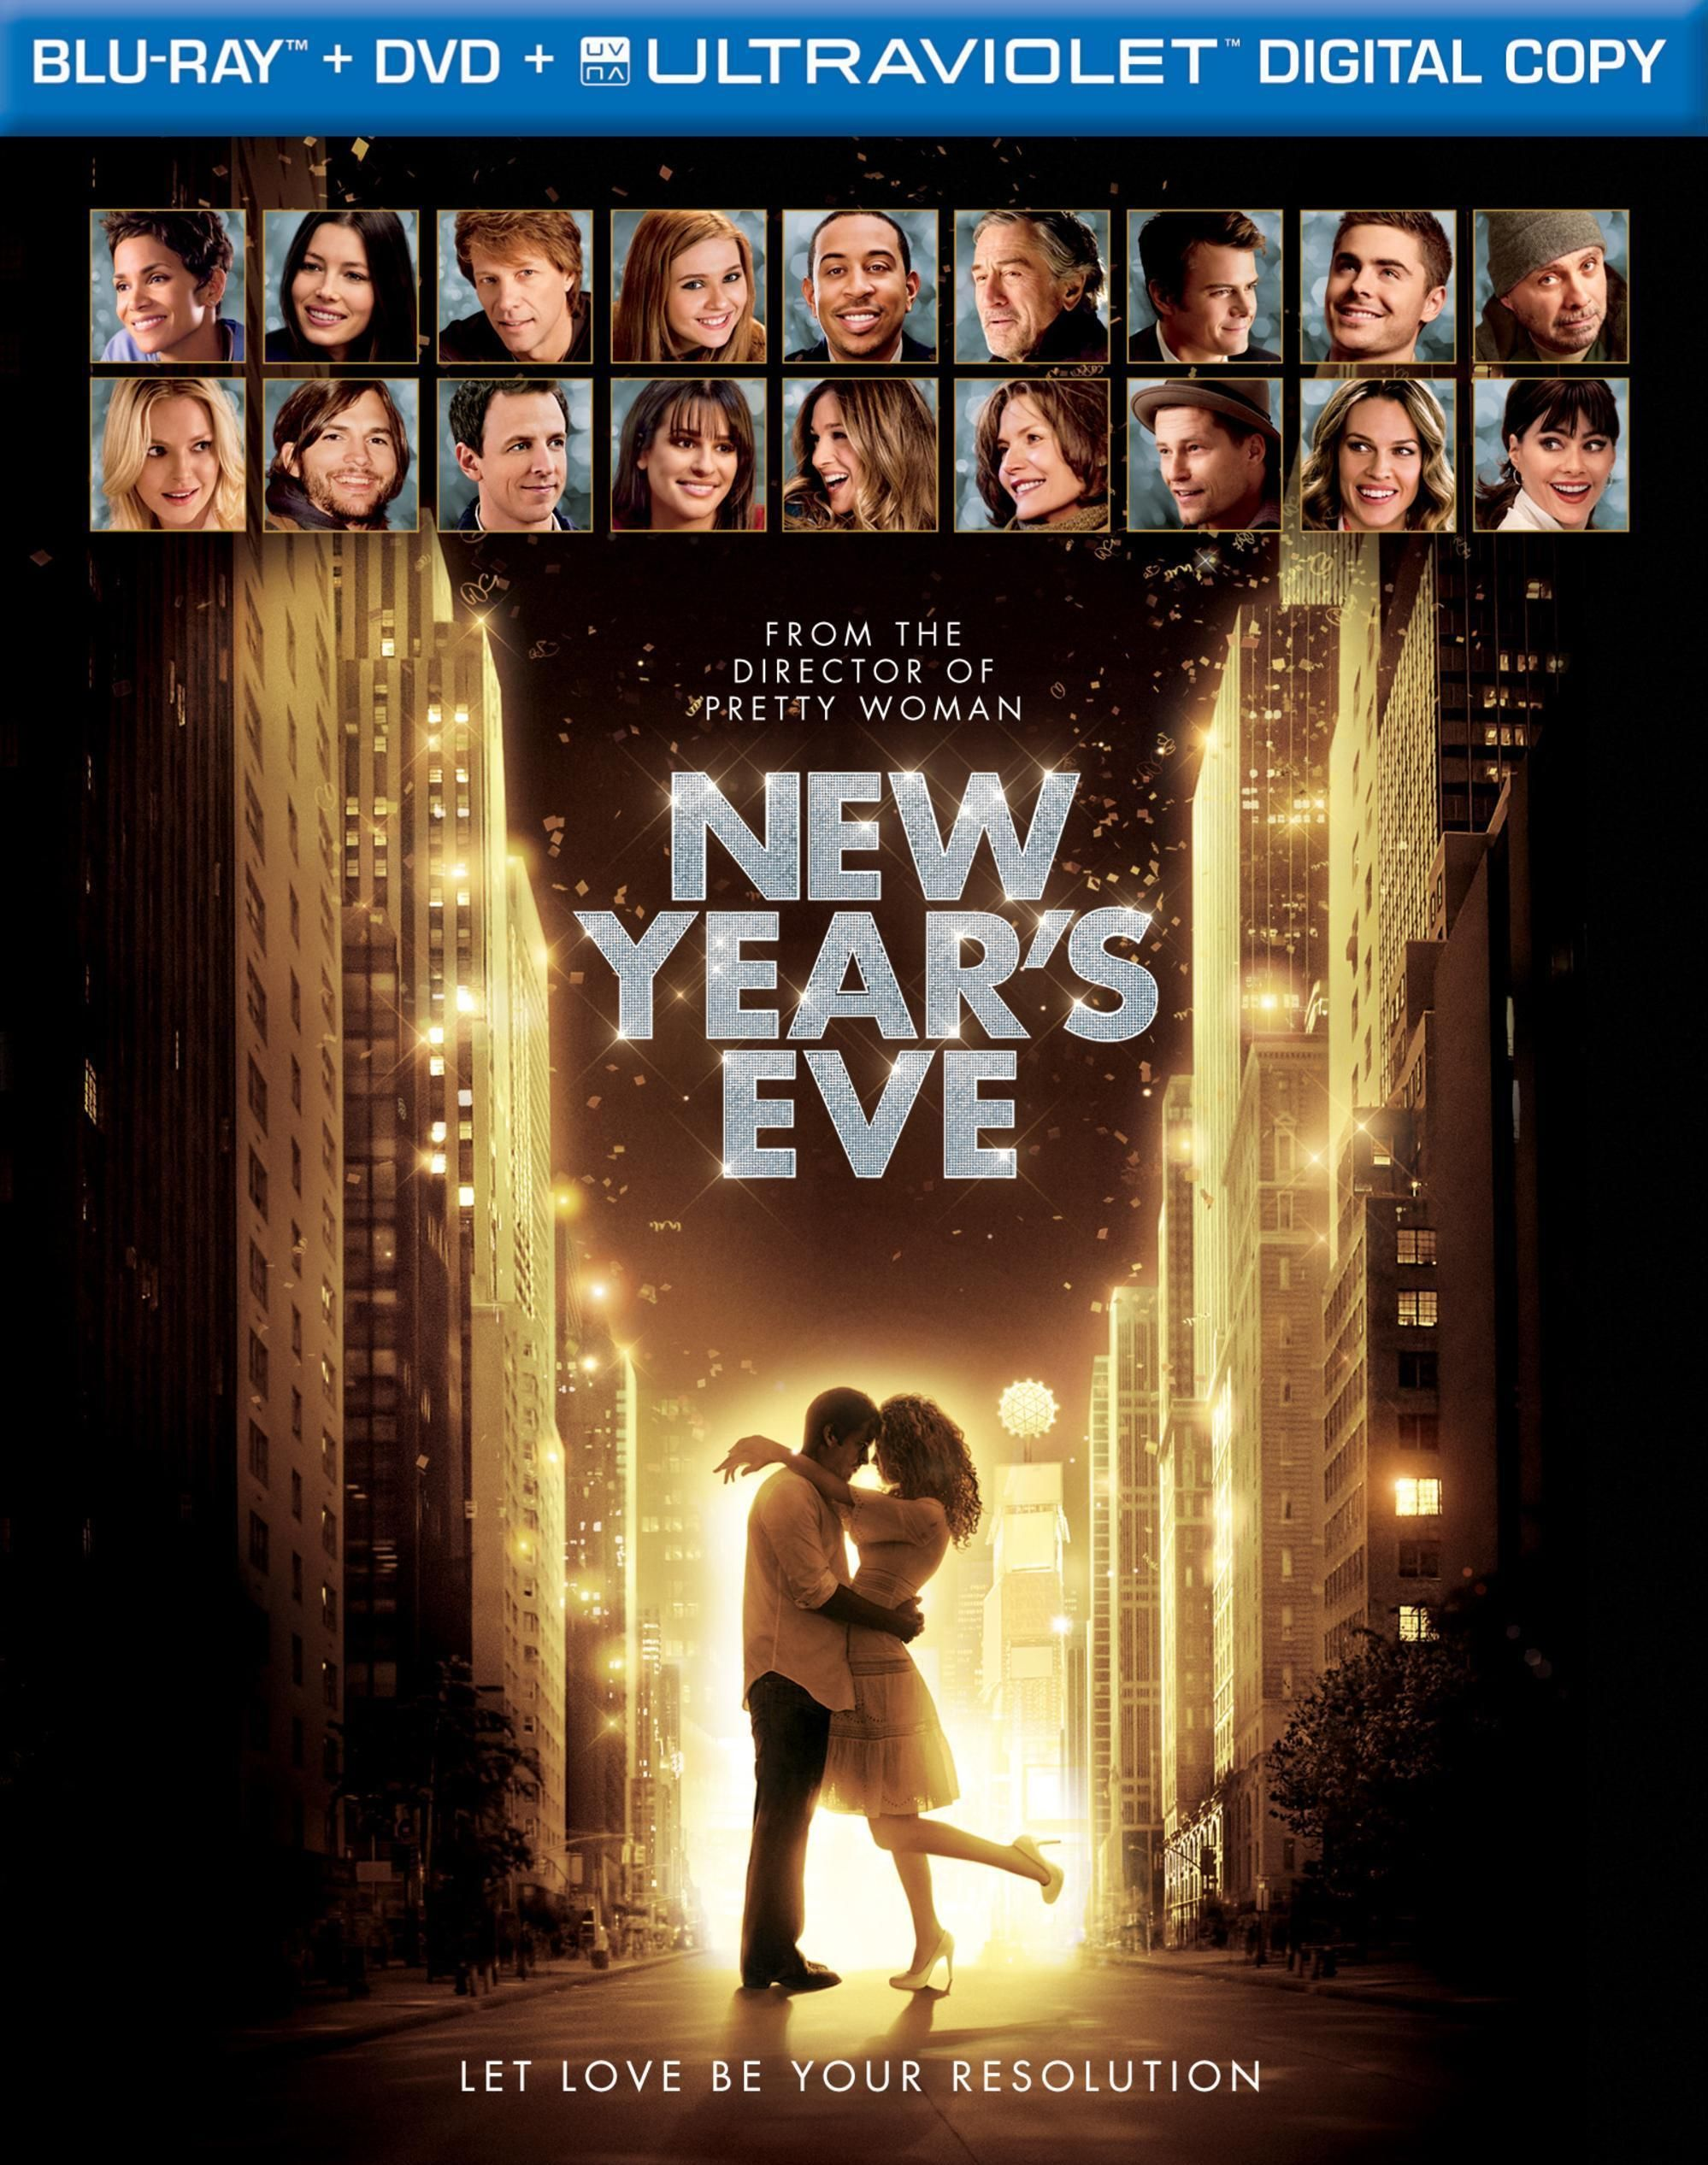 New Year's Eve New year's eve film